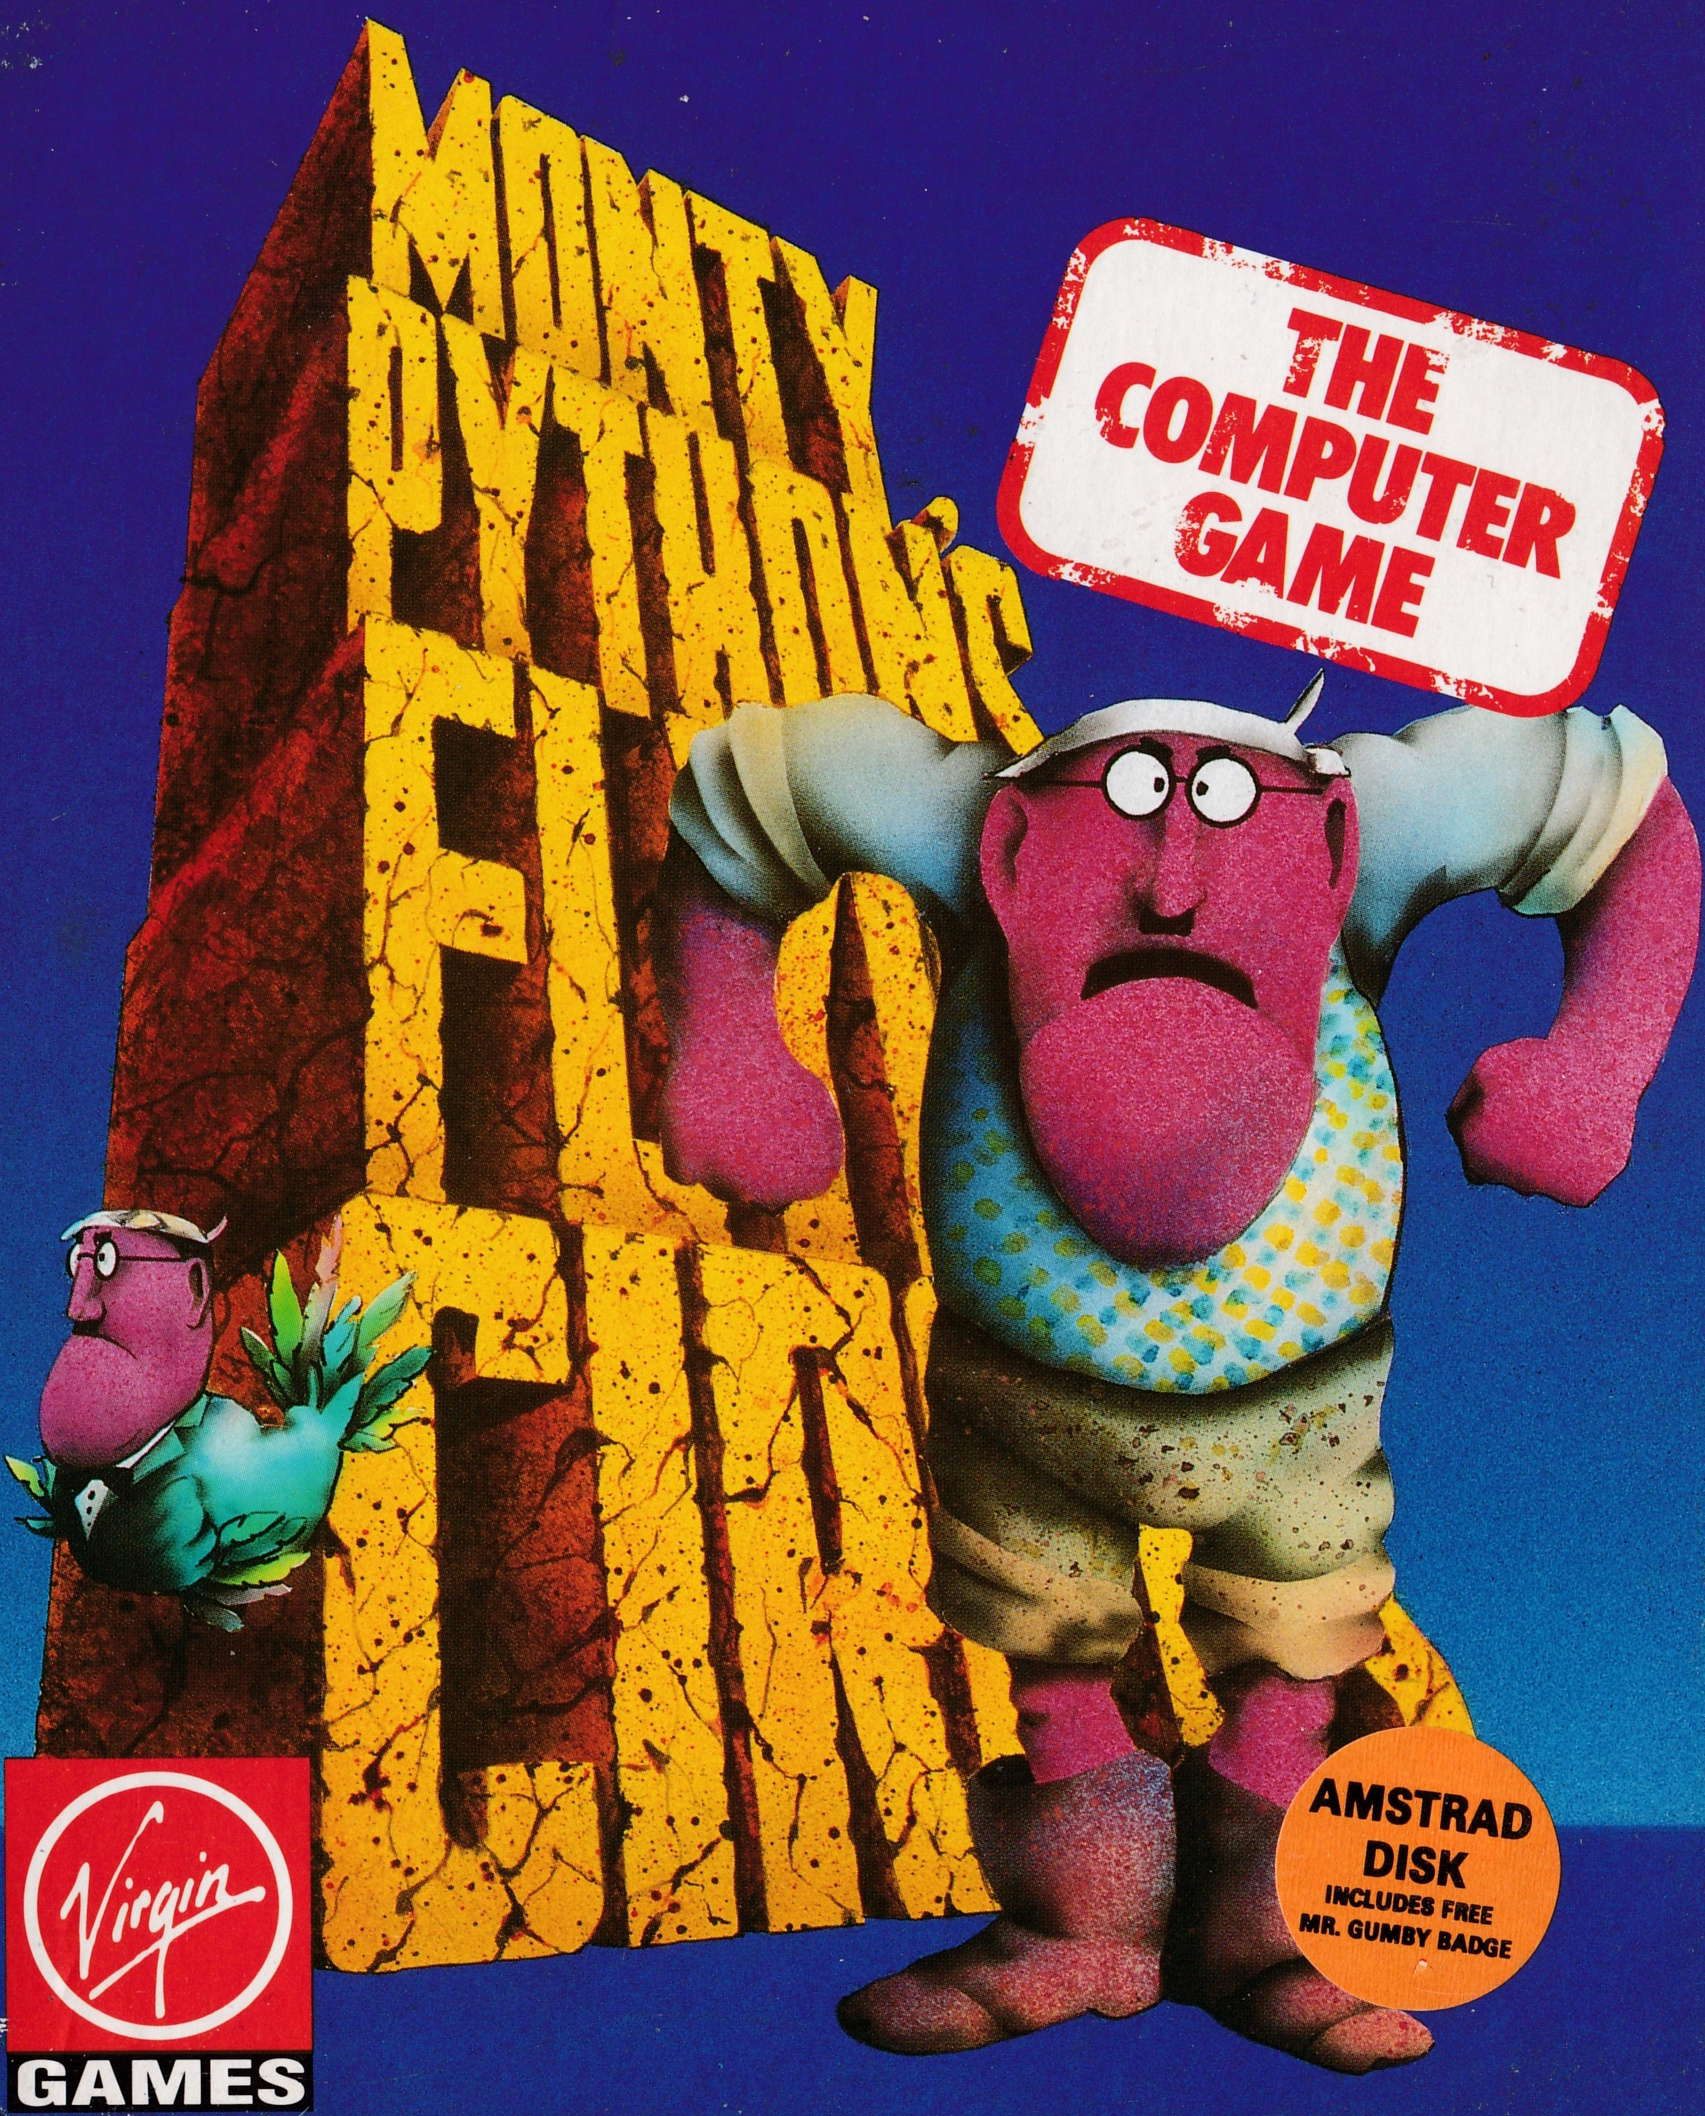 cover of the Amstrad CPC game Monty Python's Flying Circus  by GameBase CPC